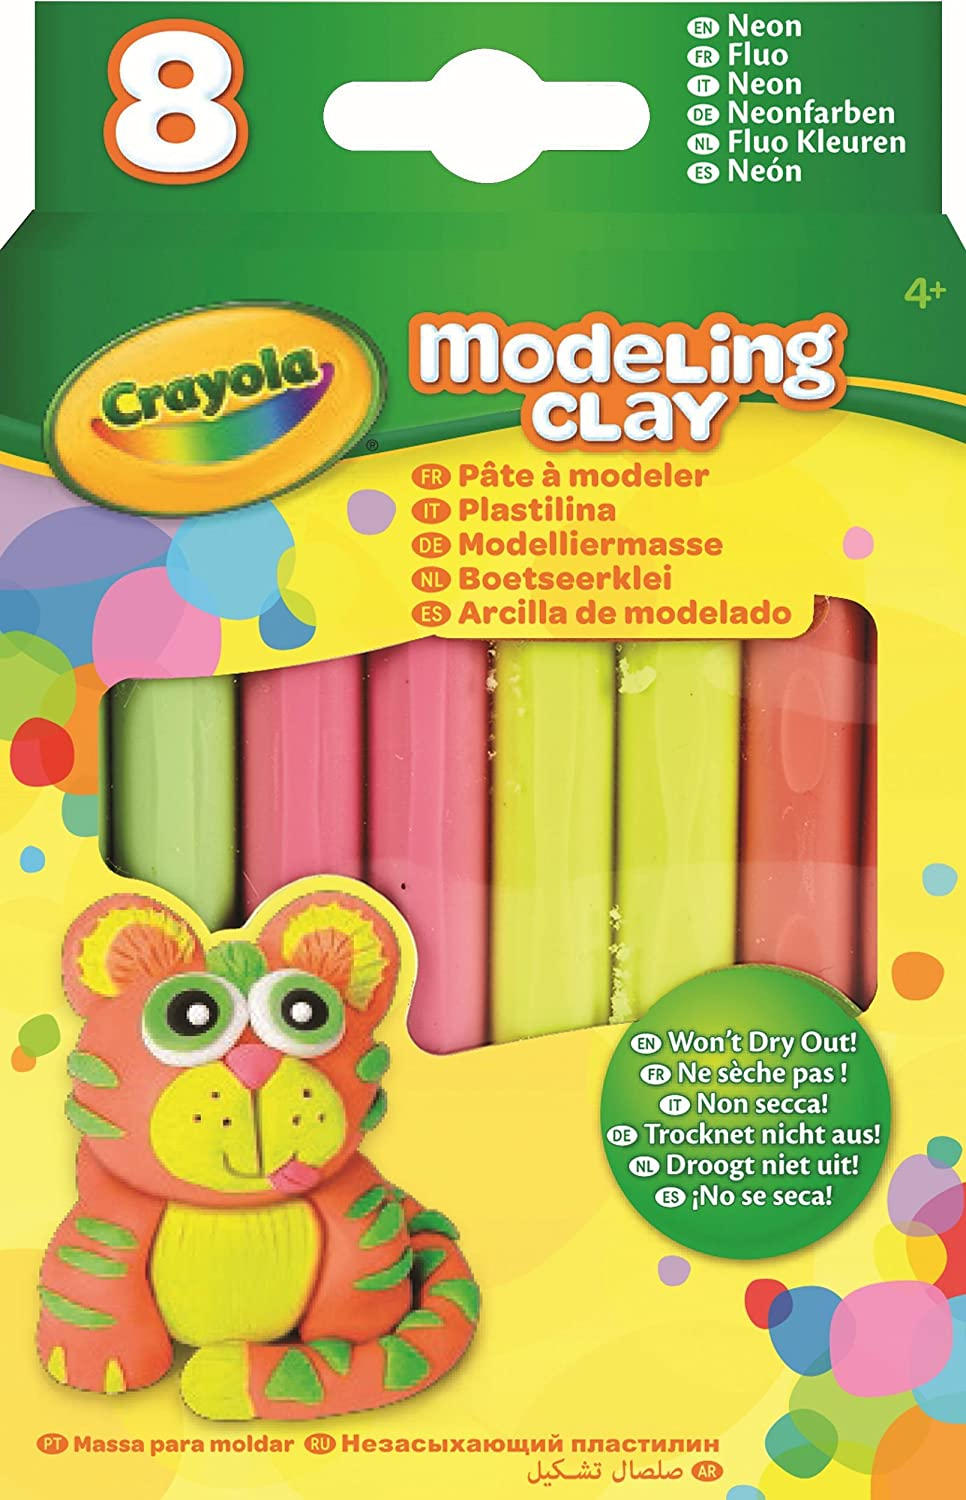 School and Craft Supplies Gifting Crayola Modeling Clay 8-Count Classic Ages 3,4 Holiday Toys Gift for Boys and Girls 6 and Up 5 Arts and Crafts Kids Stocking